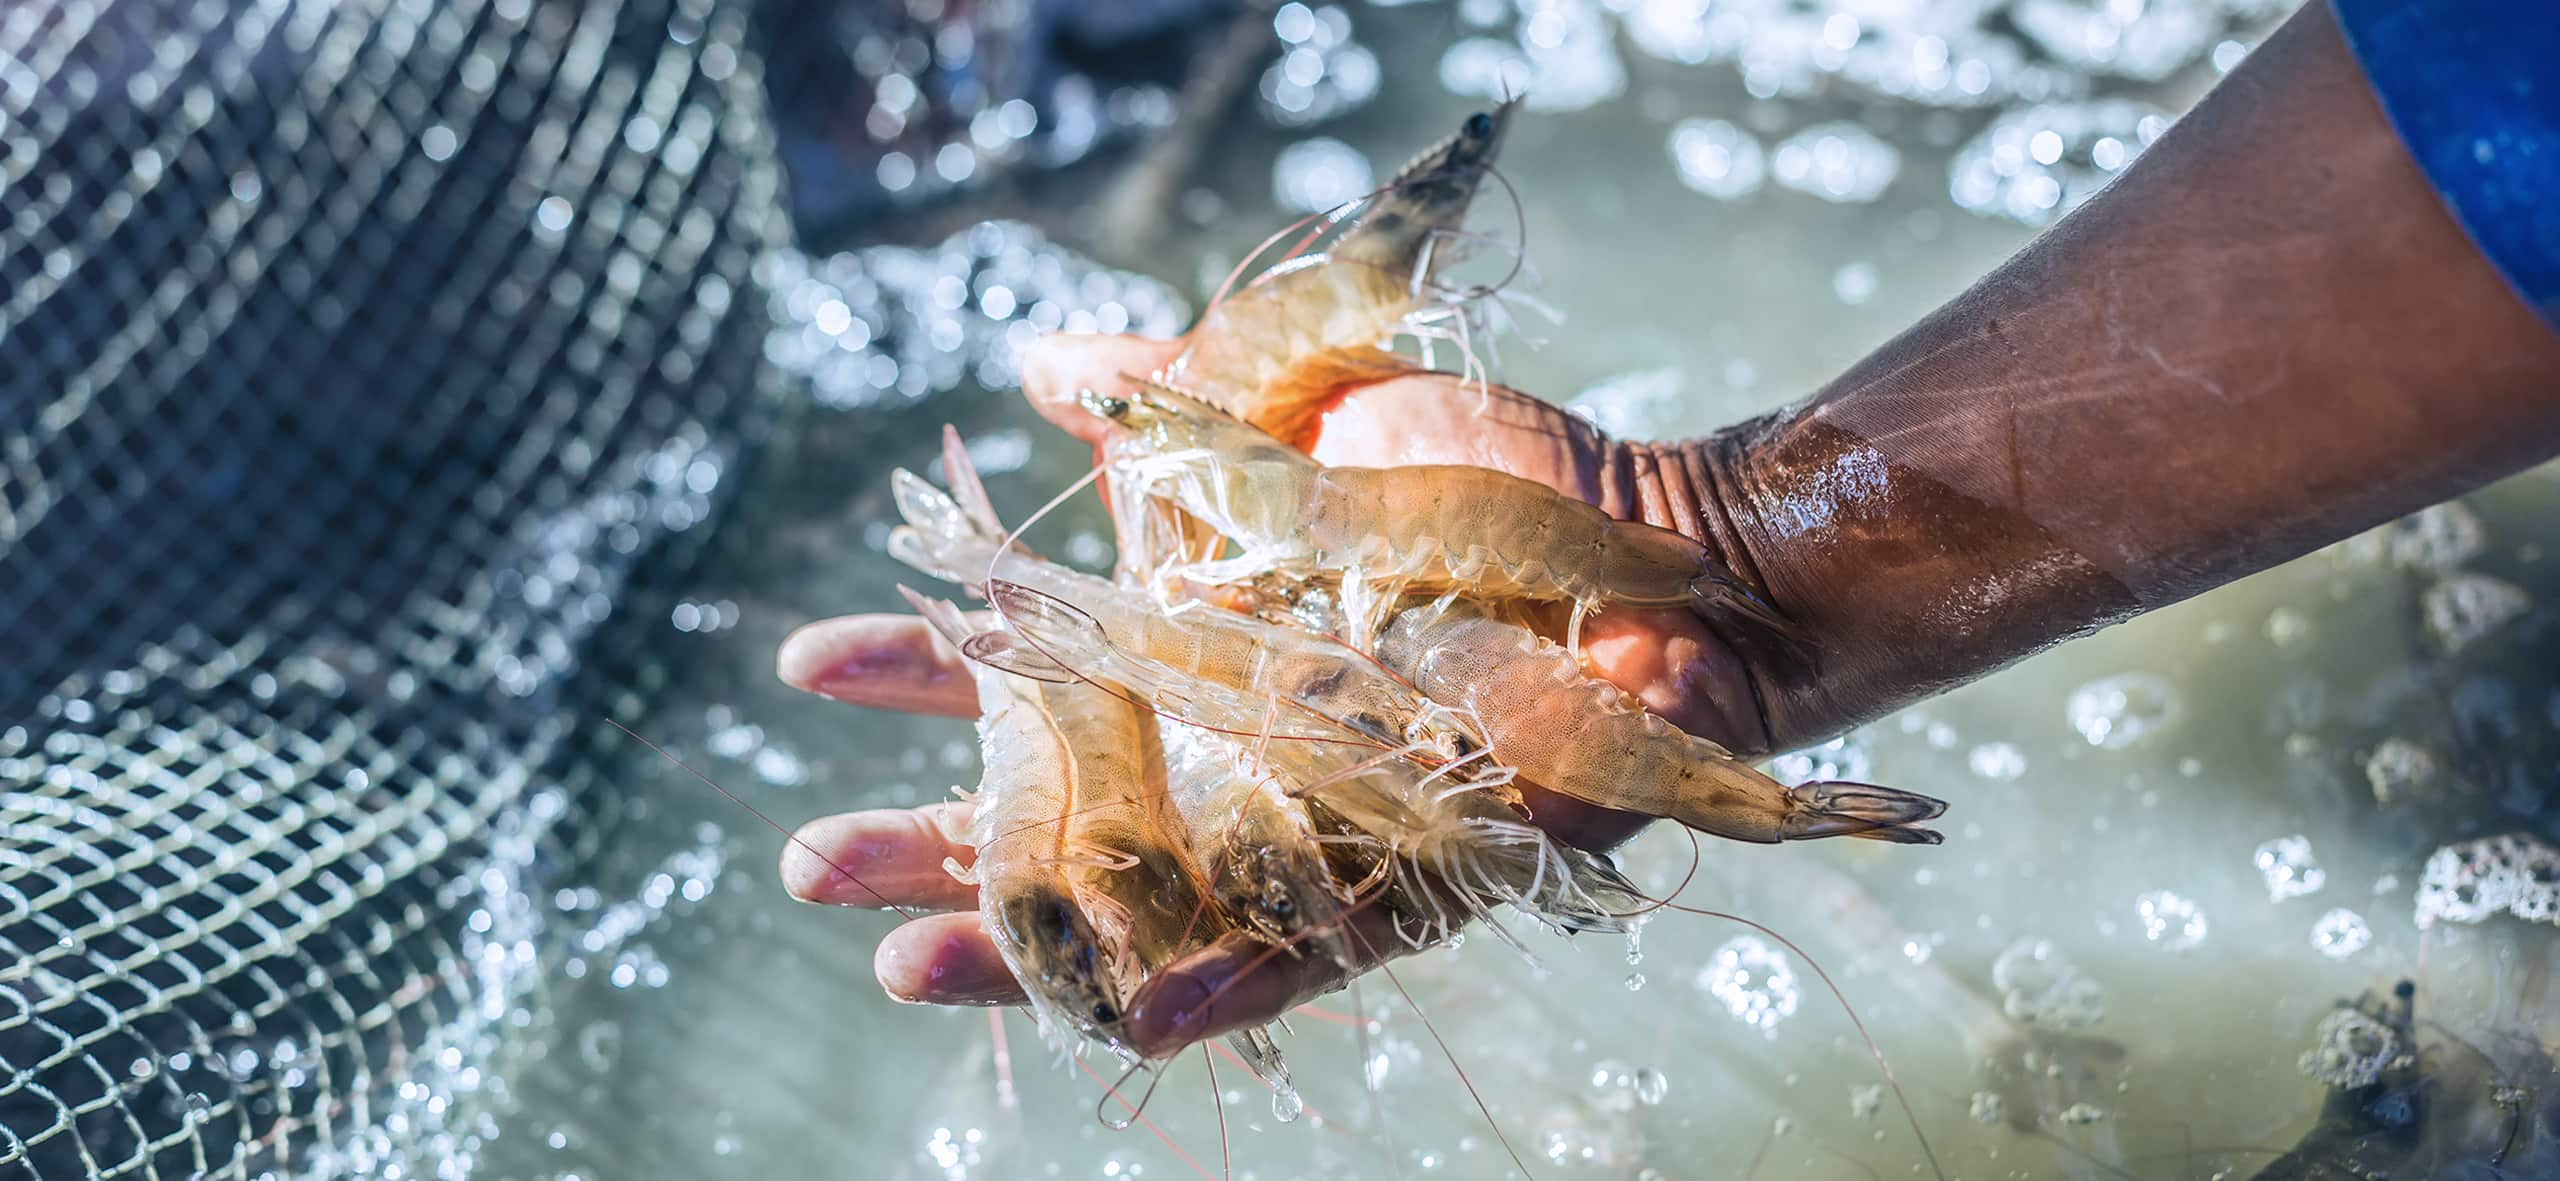 Safe Management Series: learn how to maintain water quality in aquaculture